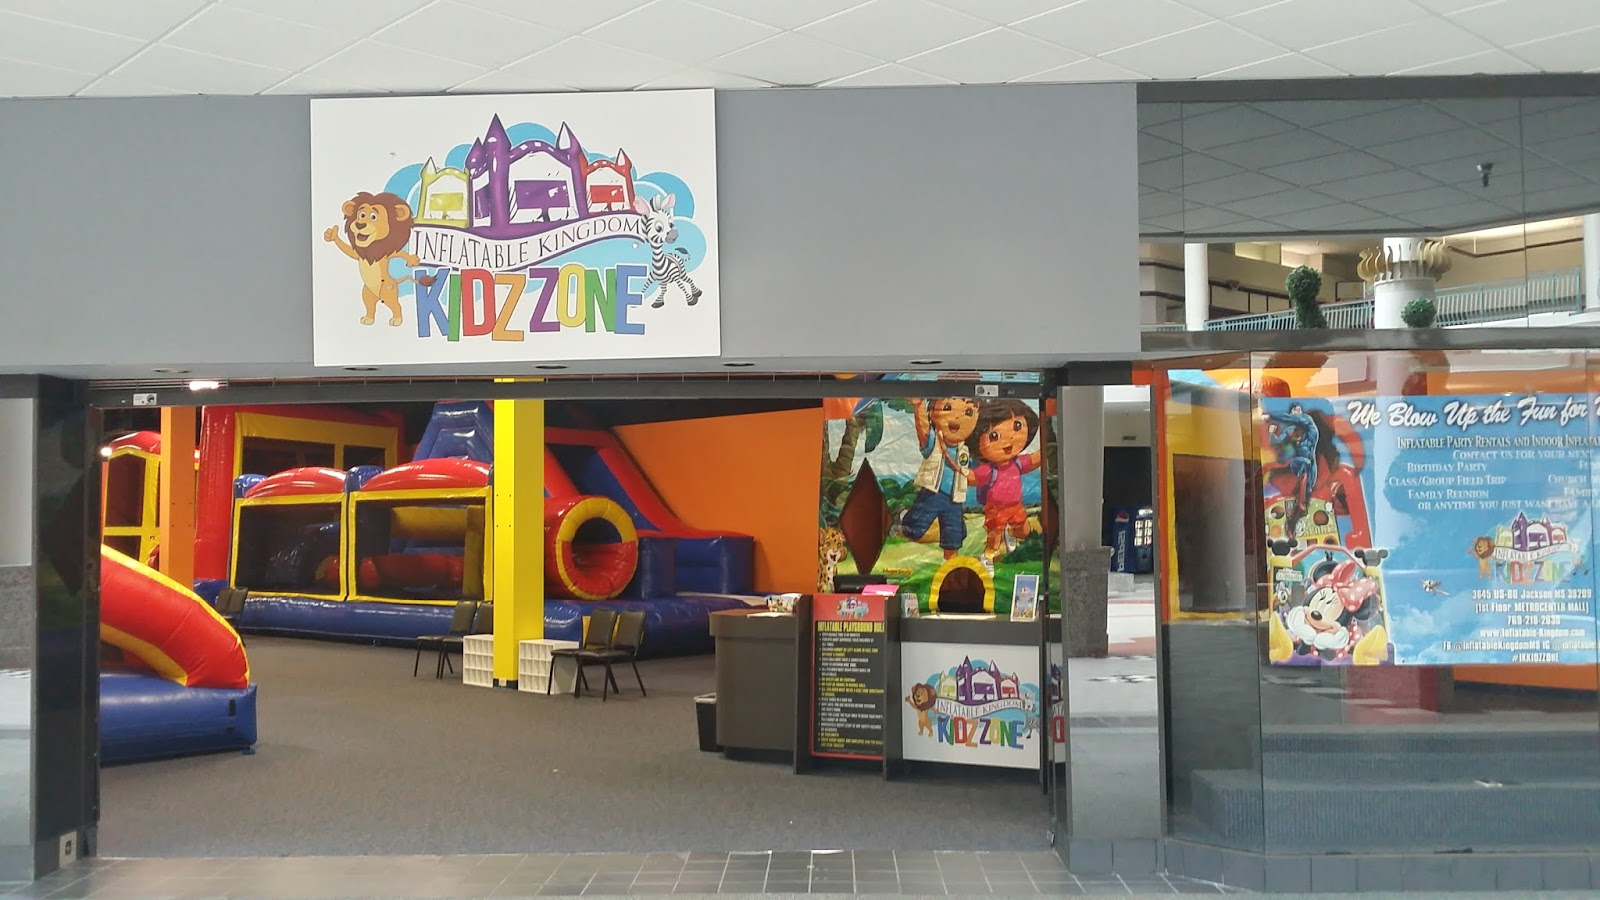 Kidz Zone Is Not Only For Birthday Parties But Every Day Fun Bring The Kiddos By Our Open Play Time Your Little One Able To